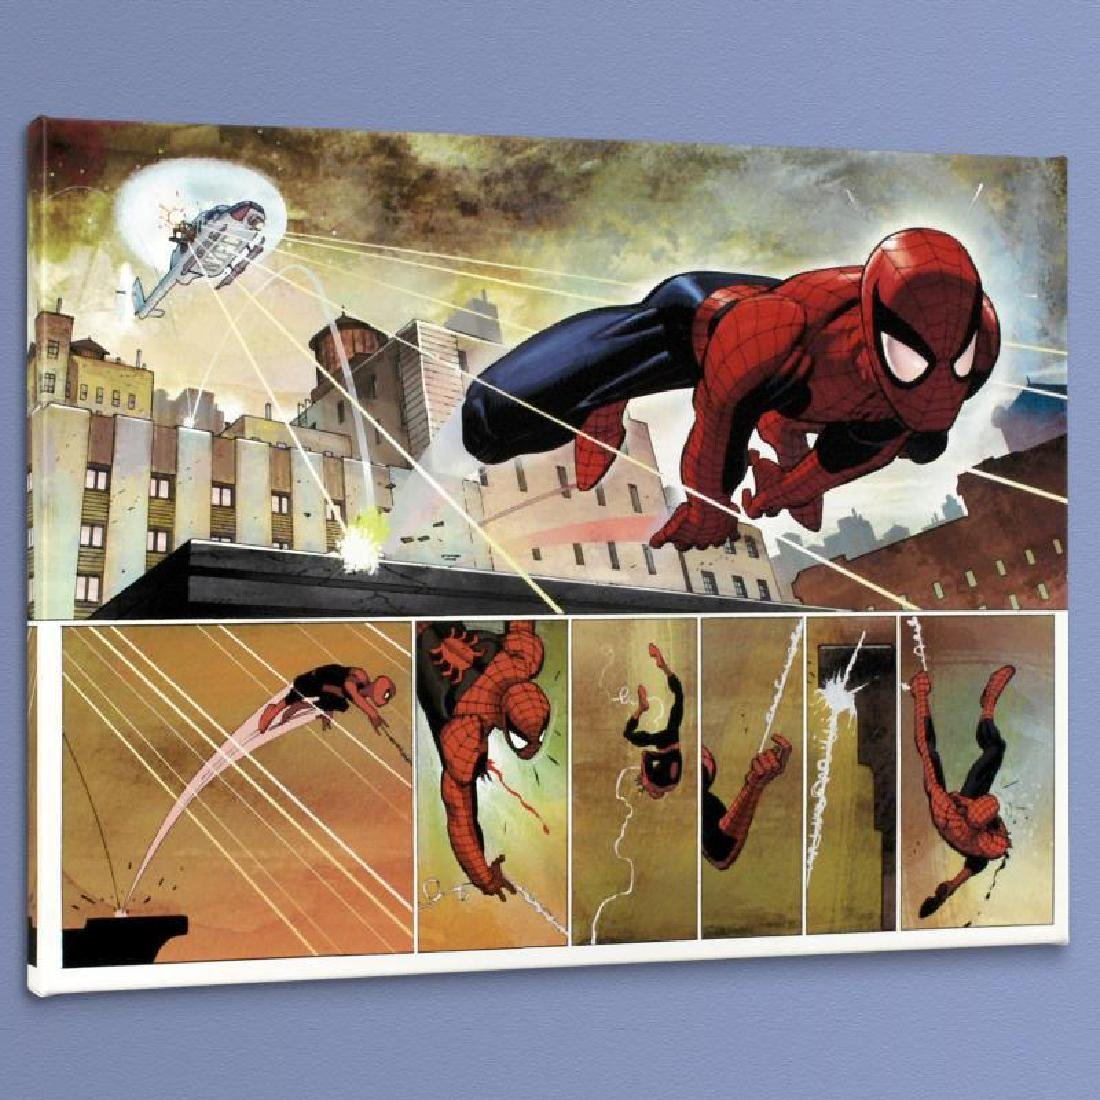 The Amazing Spider Man #584 by Marvel Comics - 3